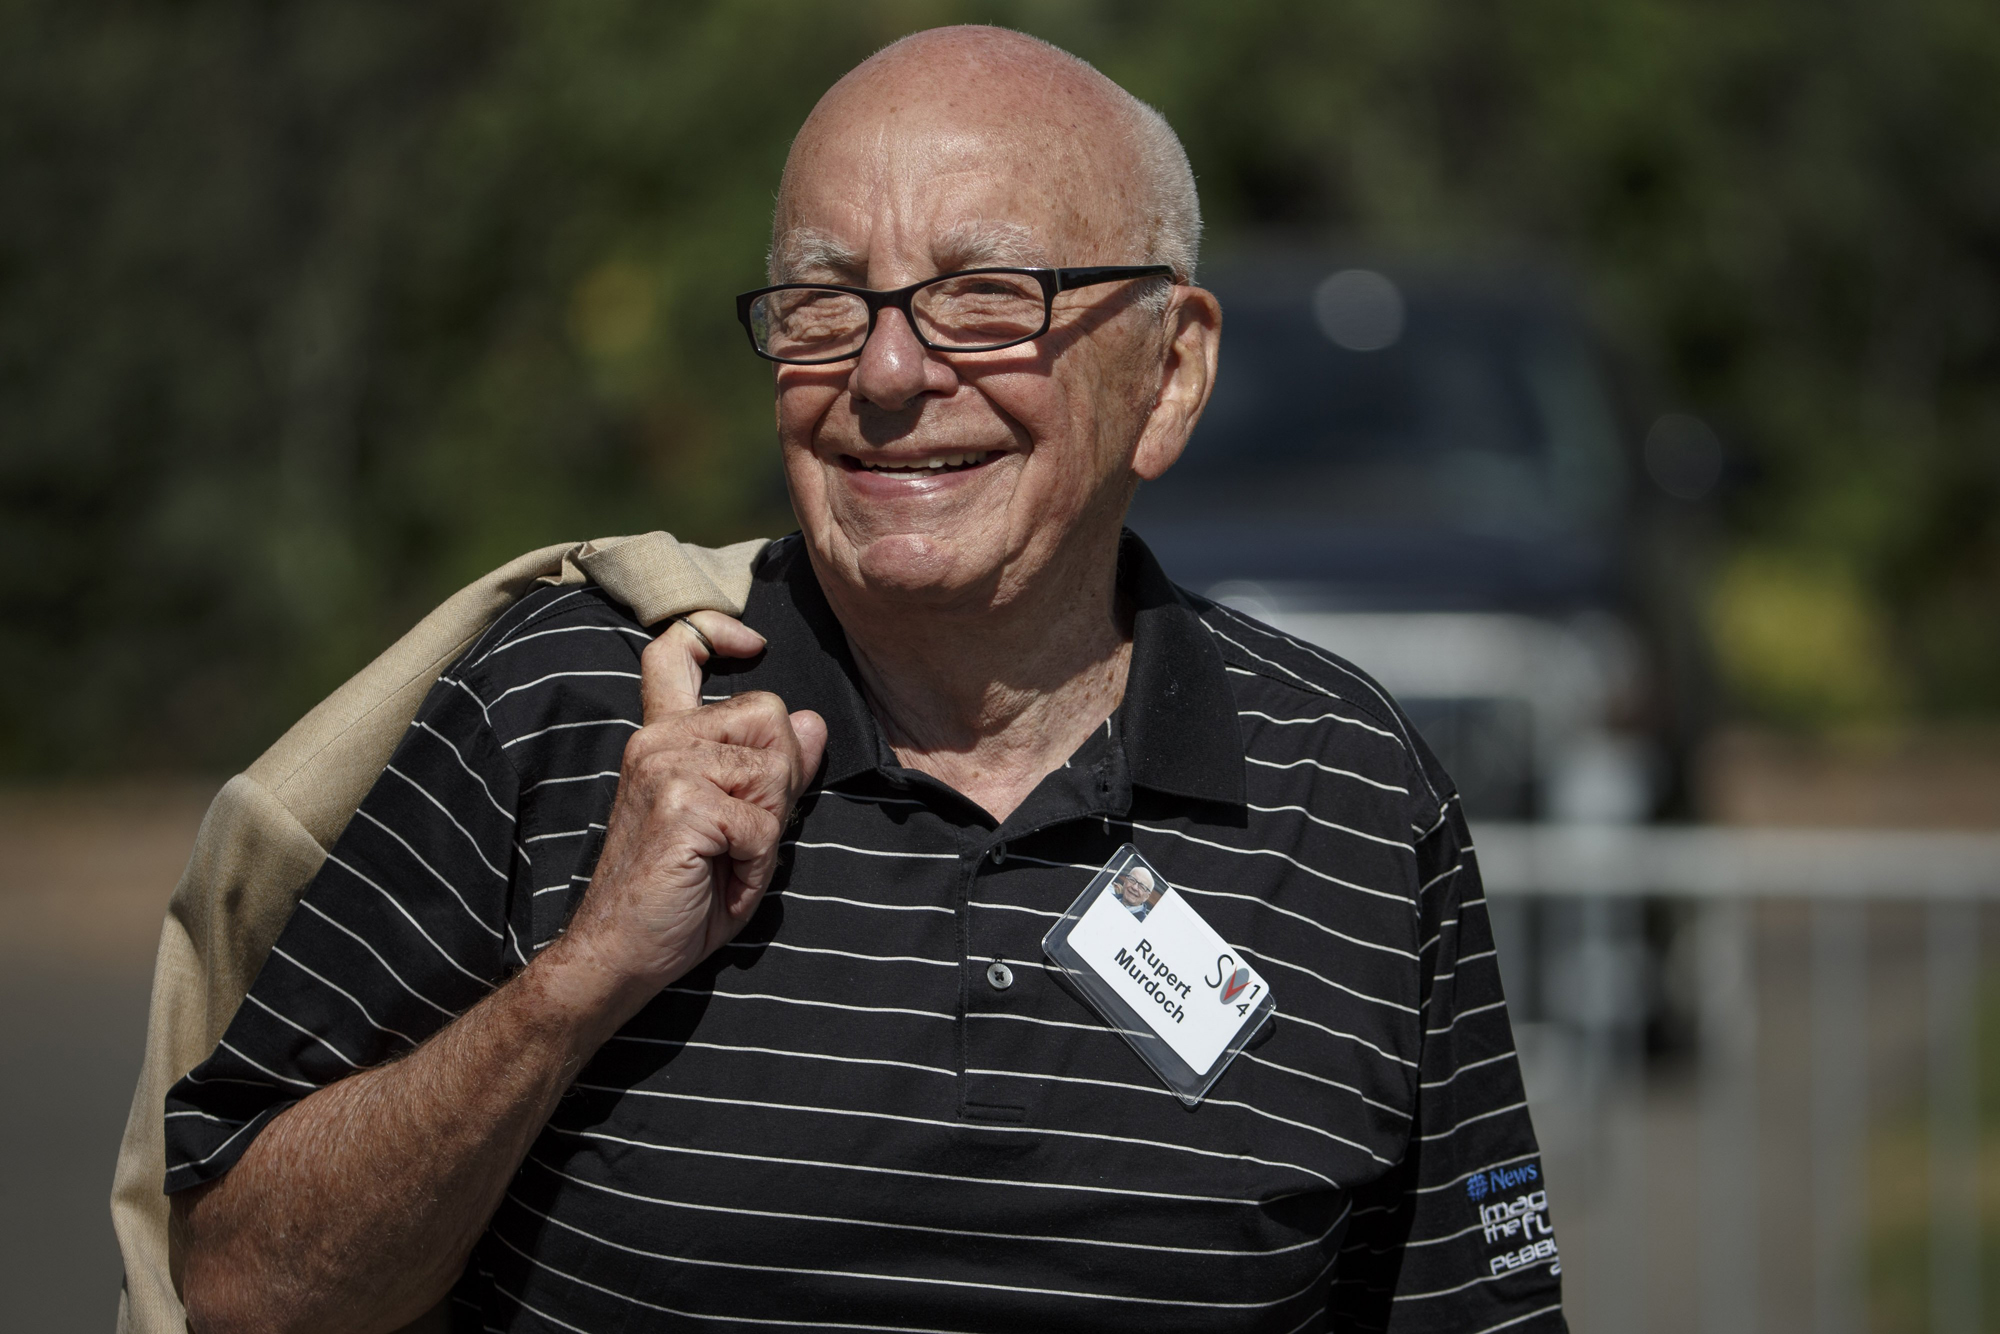 Rupert Murdoch, Executive Chairman of News Corp. and Chairman and CEO of 21st Century Fox, attends the Allen & Co. 32nd annual Media and Technology Conference, in Sun Valley, Idaho, July 10, 2014.